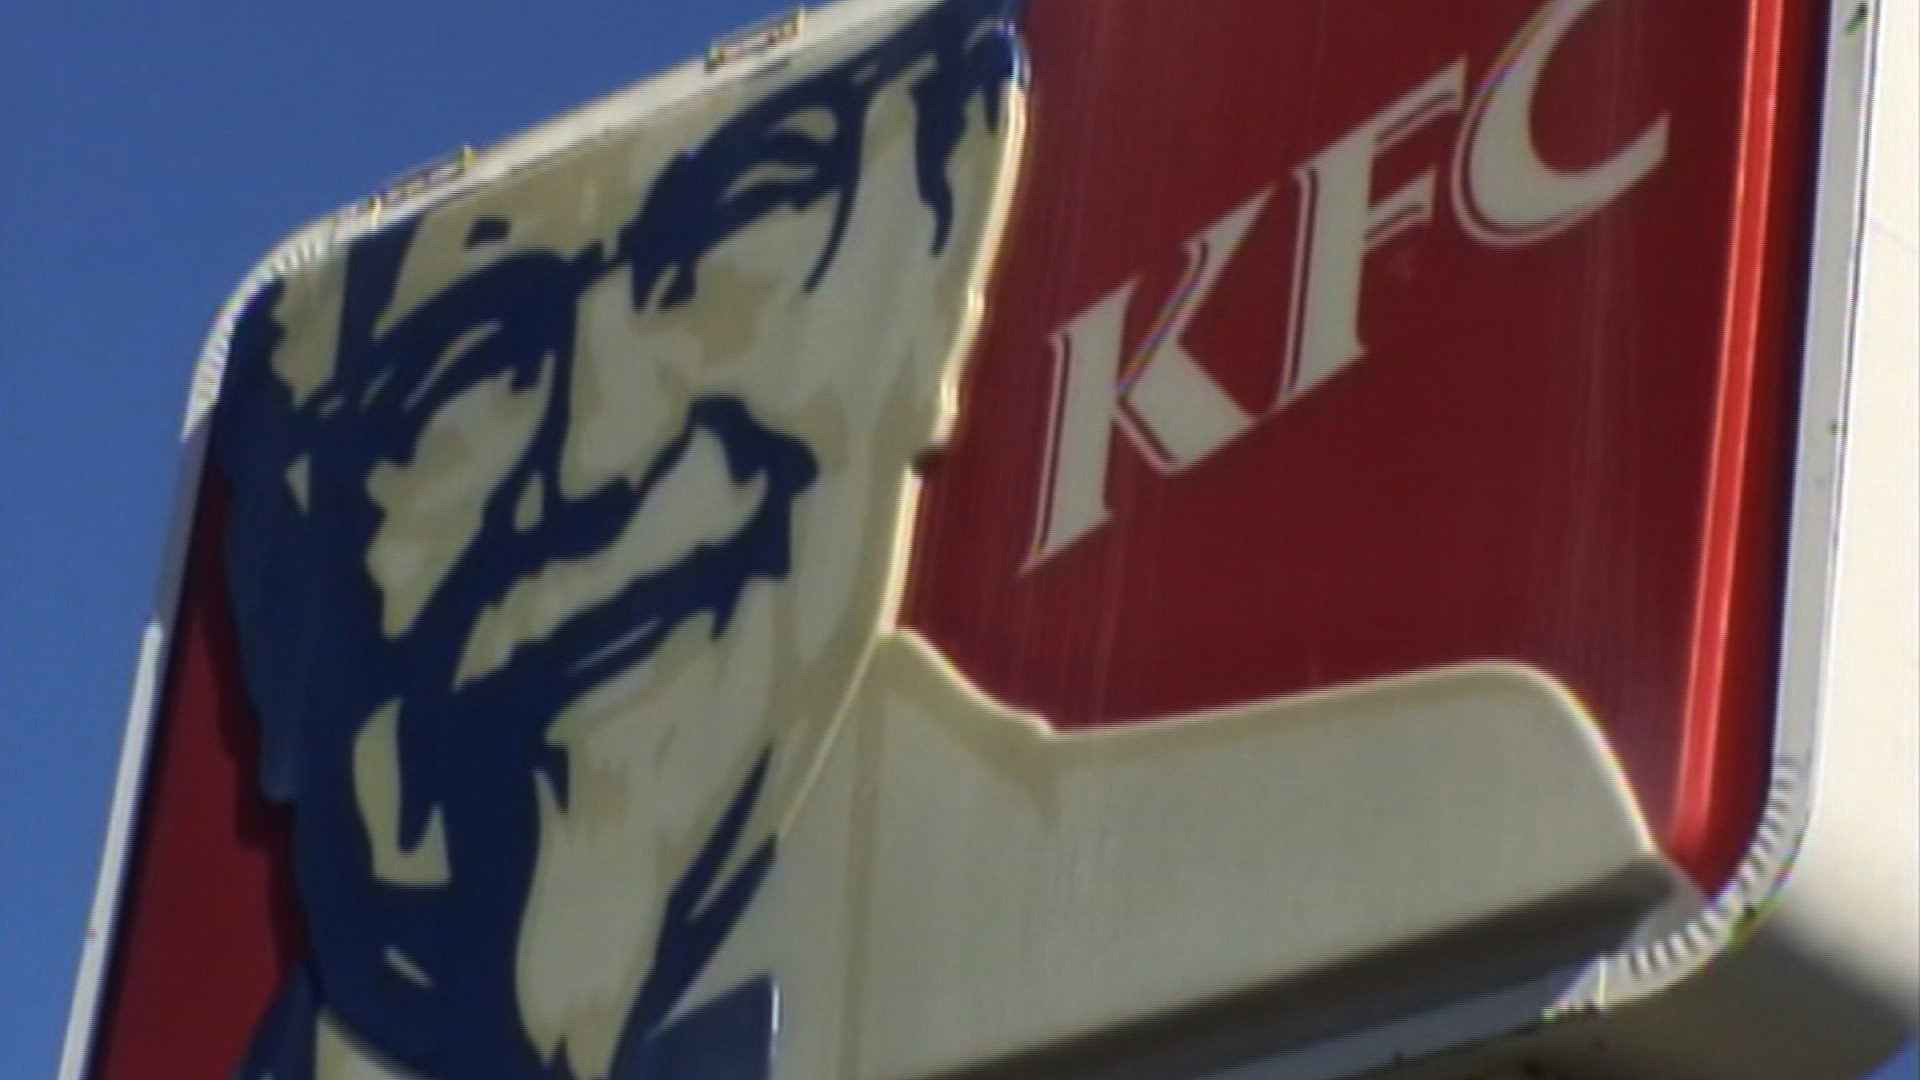 A KFC sign is seen in a file photo. (Credit: CNN)